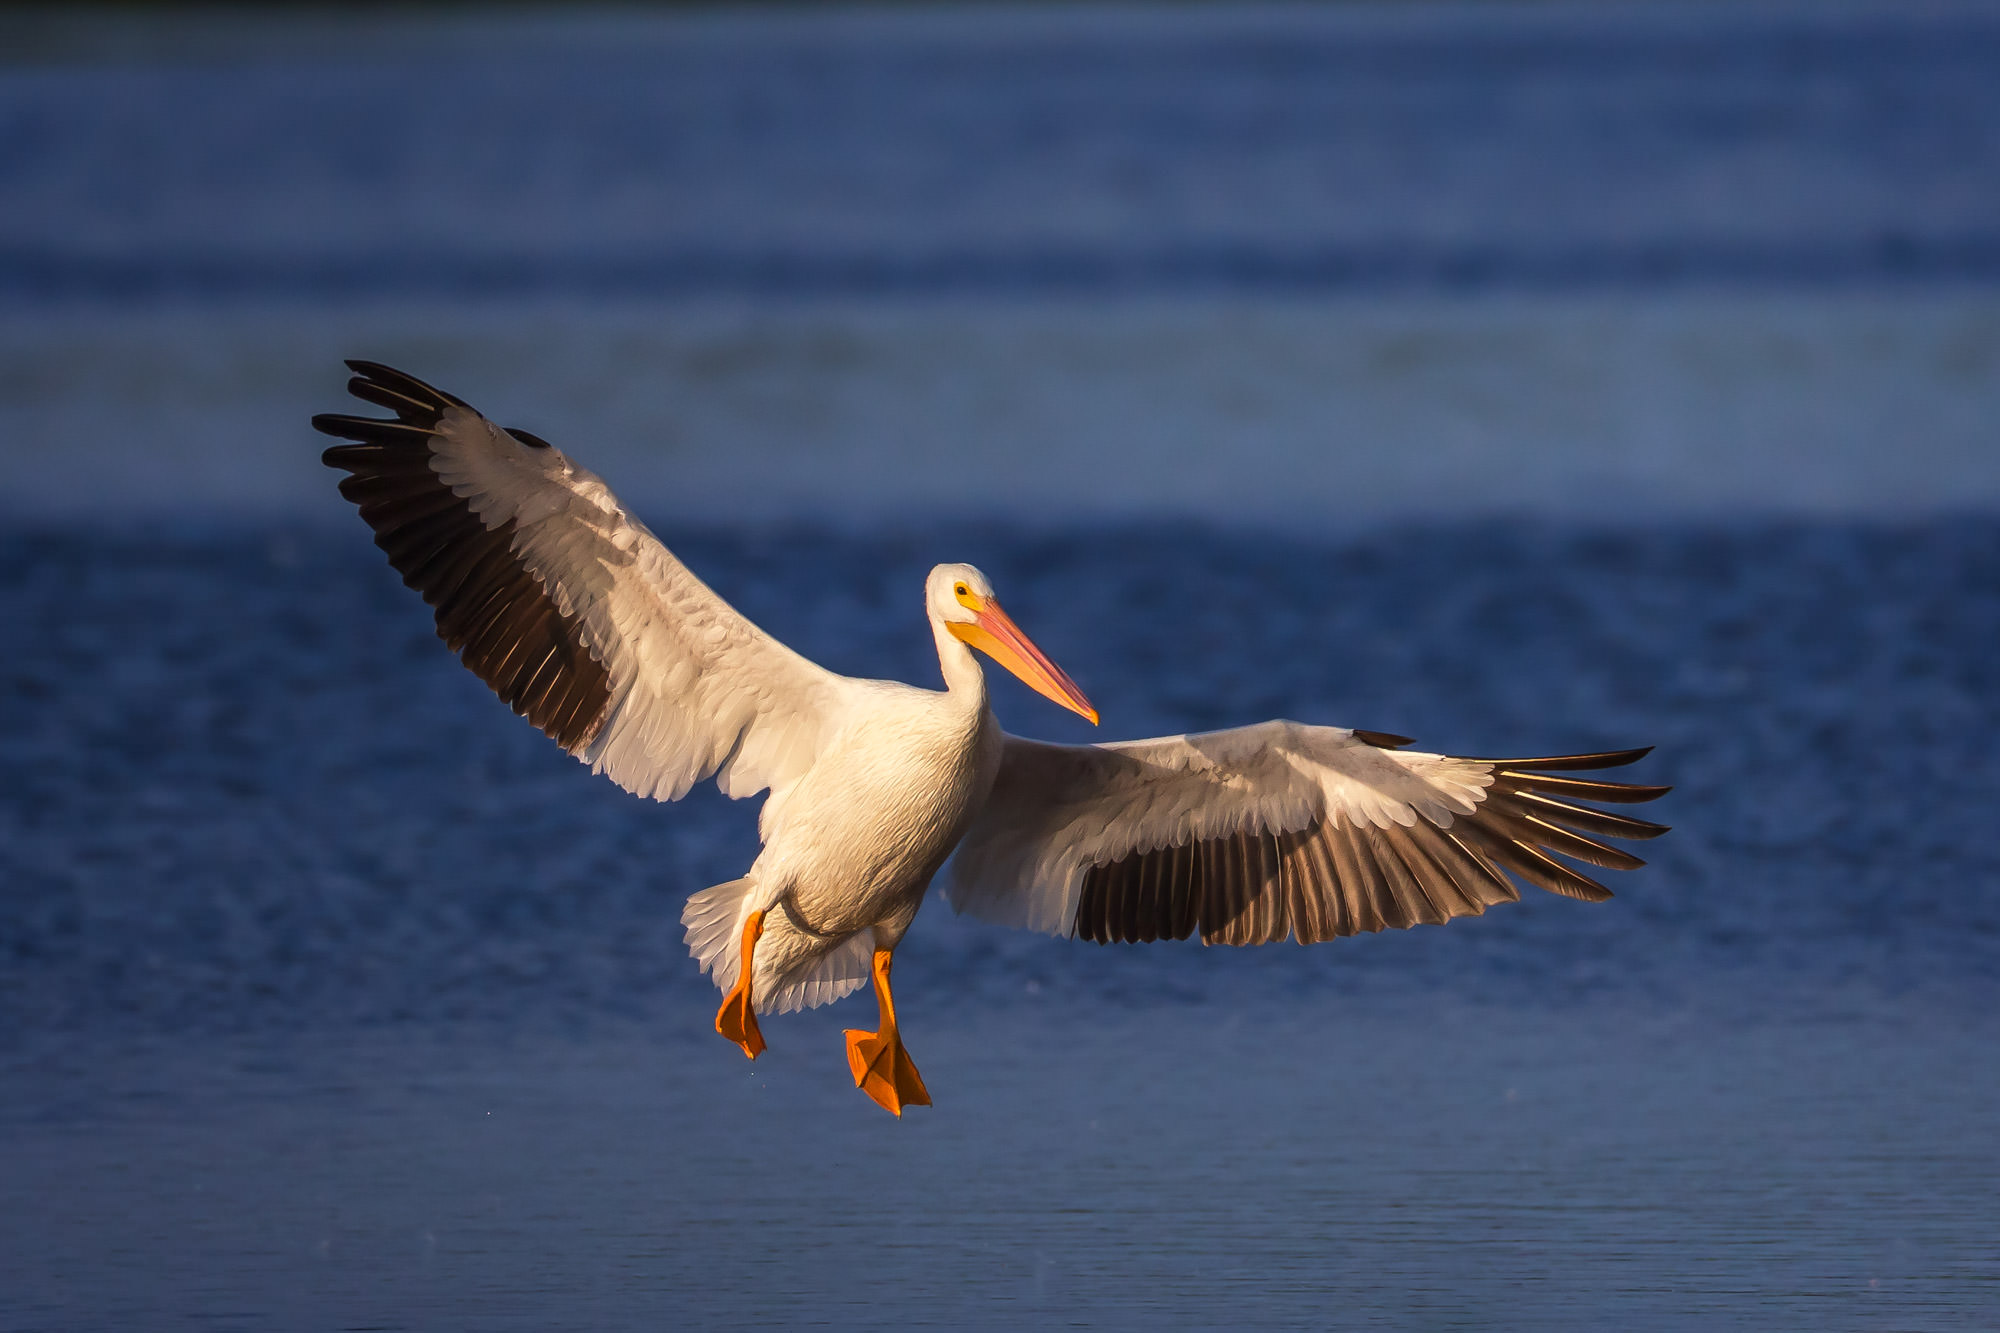 White Pelican Fine Art Photography A Limited Edition photograph of a White Pelican coming in for a landing with its gear down...